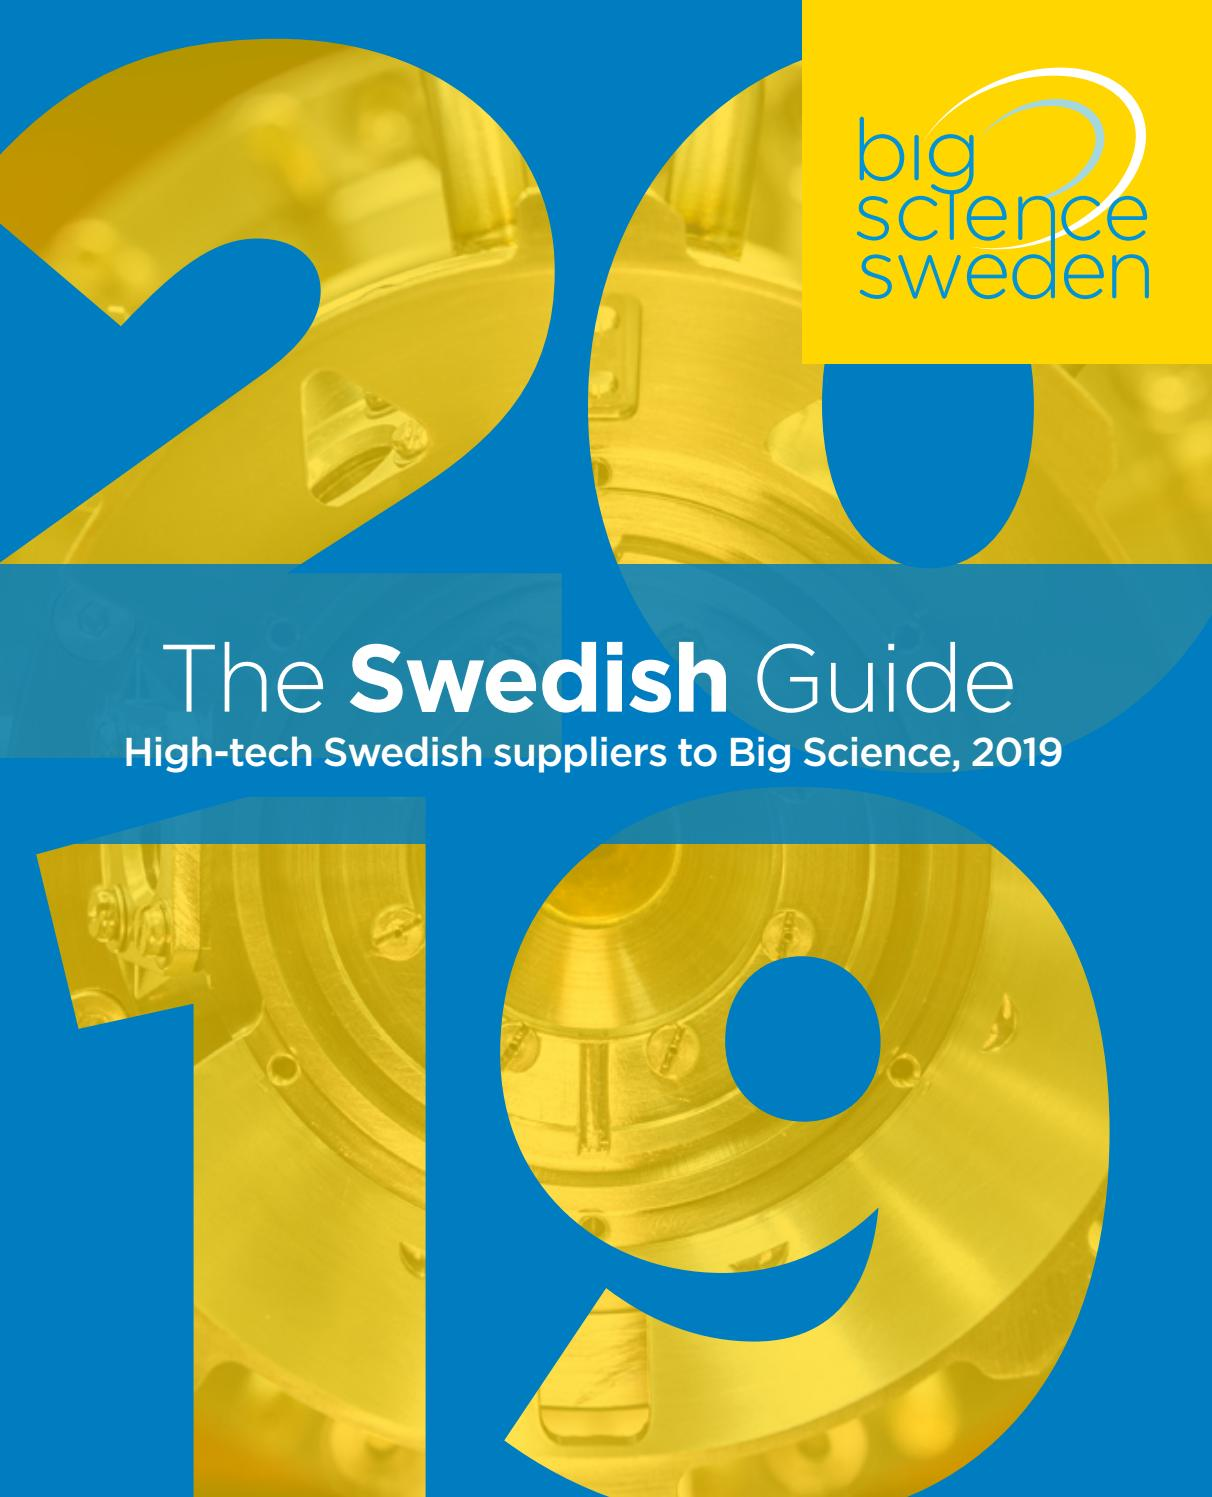 The Swedish Guide 2019, High-tech Swedish suppliers to Big